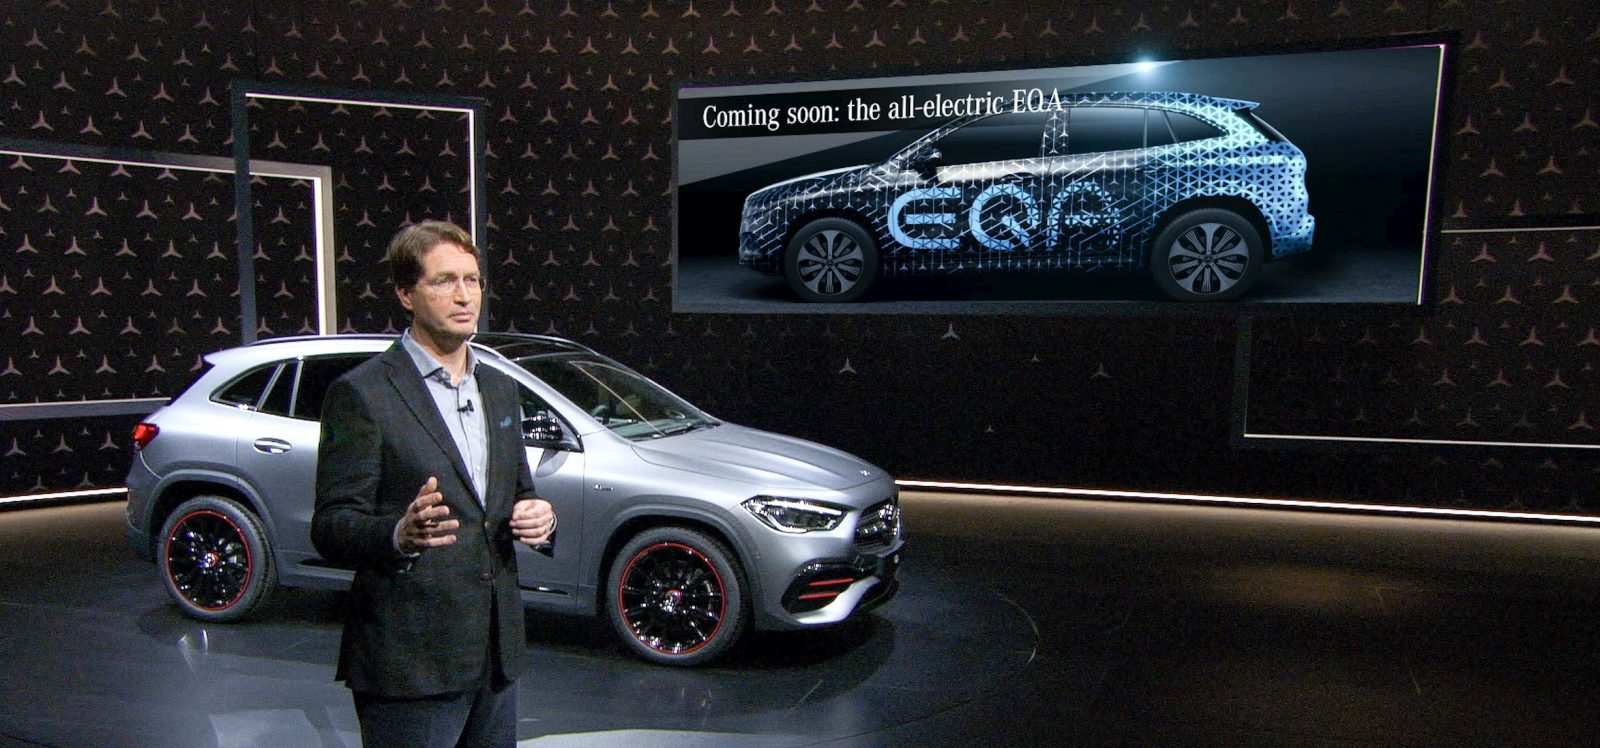 Mercedes-Benz teases EQA electric car – moving from hatchback to crossover